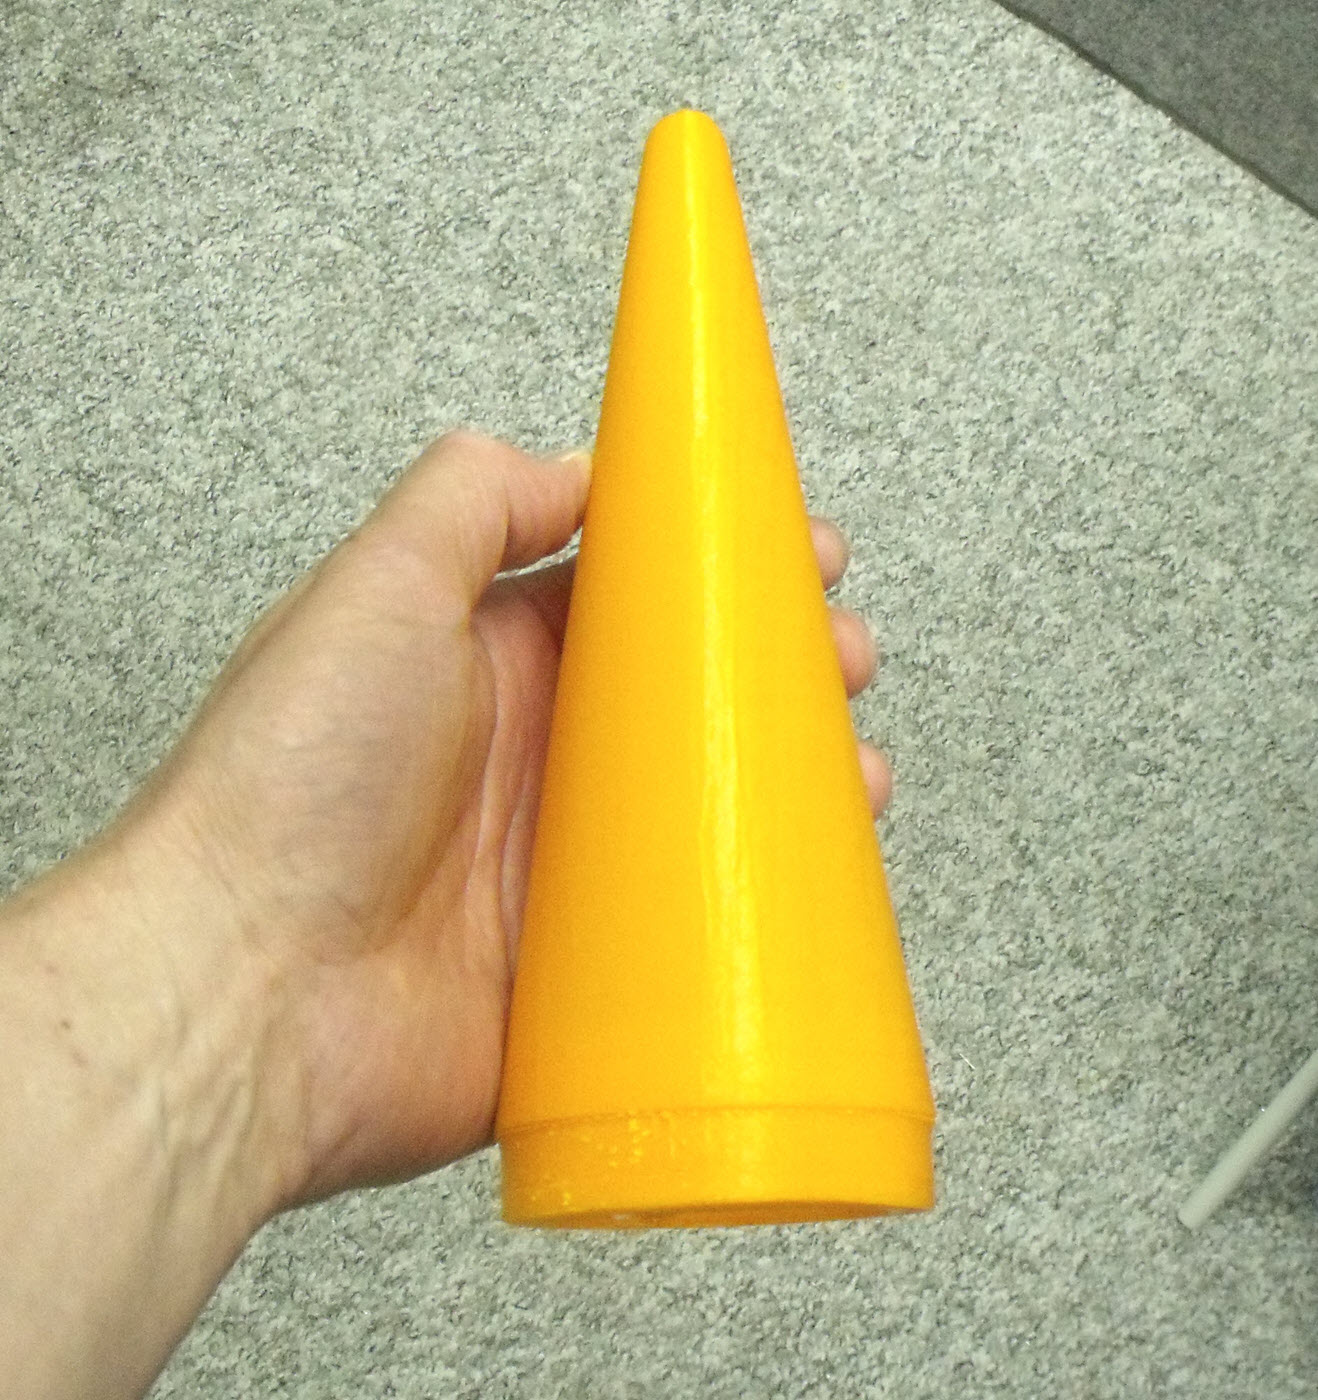 3D printed Xi nosecone